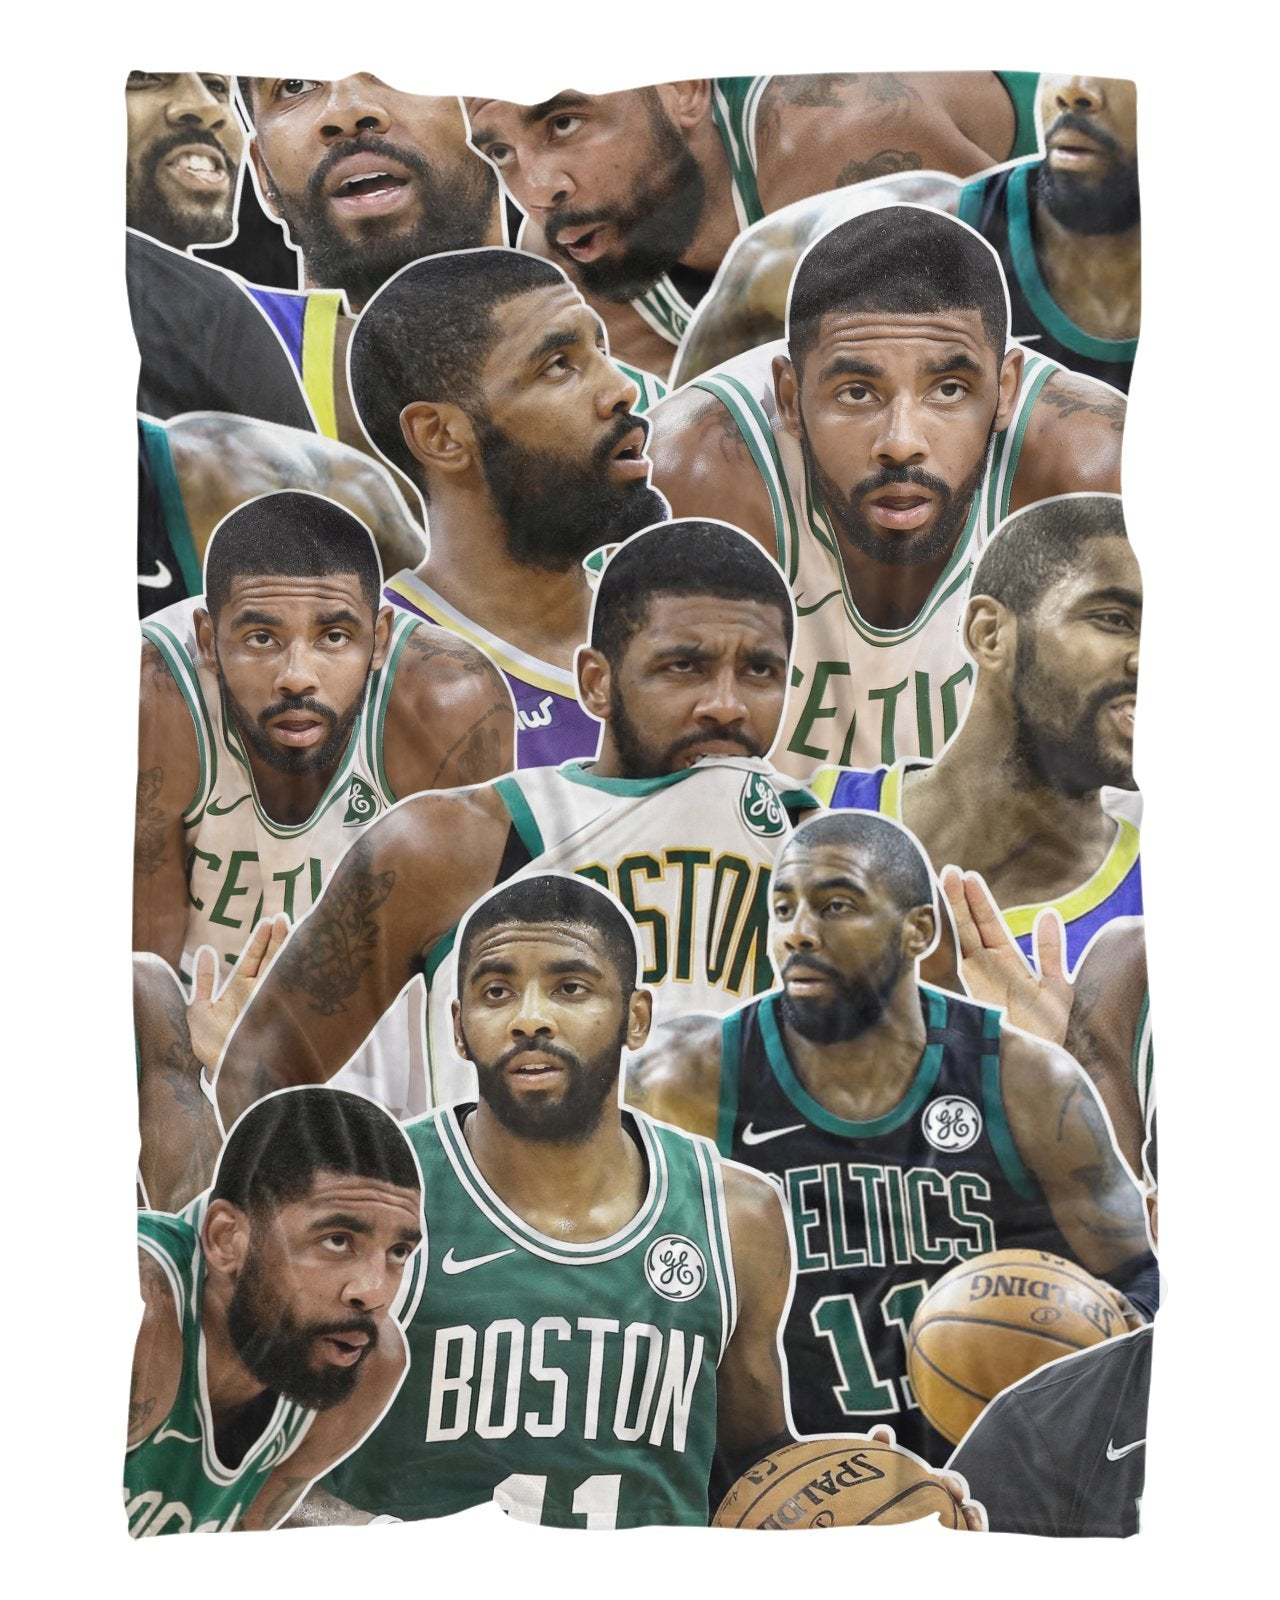 Kyrie Irving printed all over in HD on premium fabric. Handmade in California.